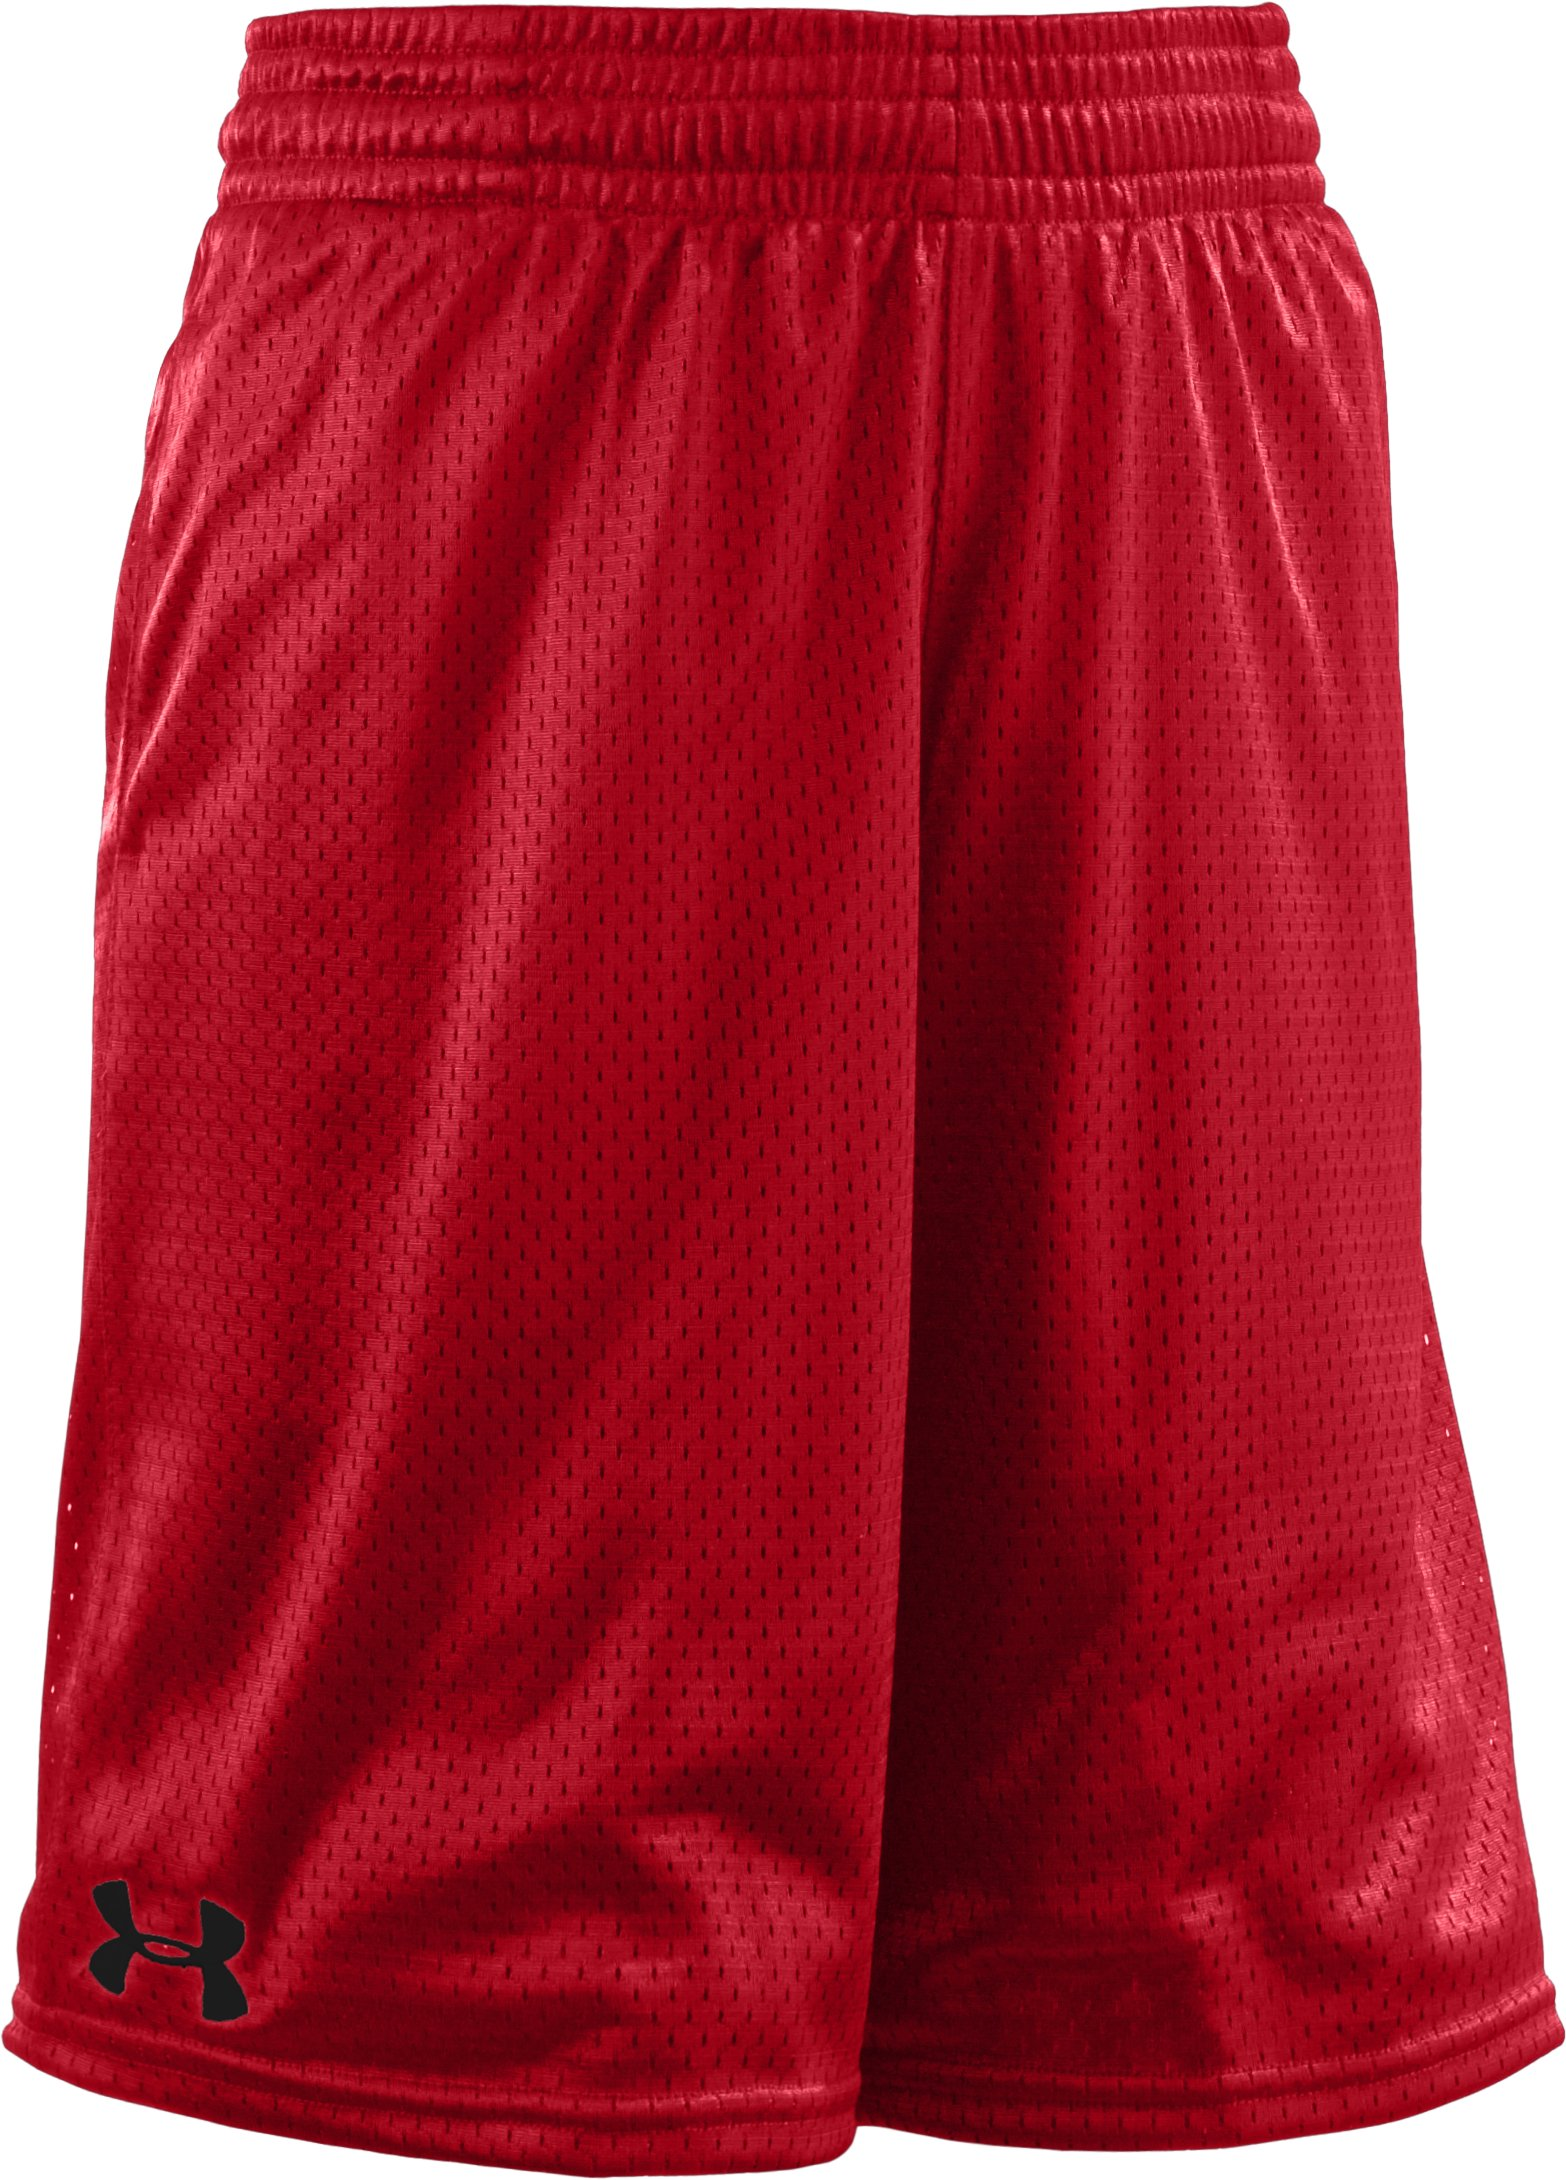 Boys' UA Dominate Mesh Shorts, Red